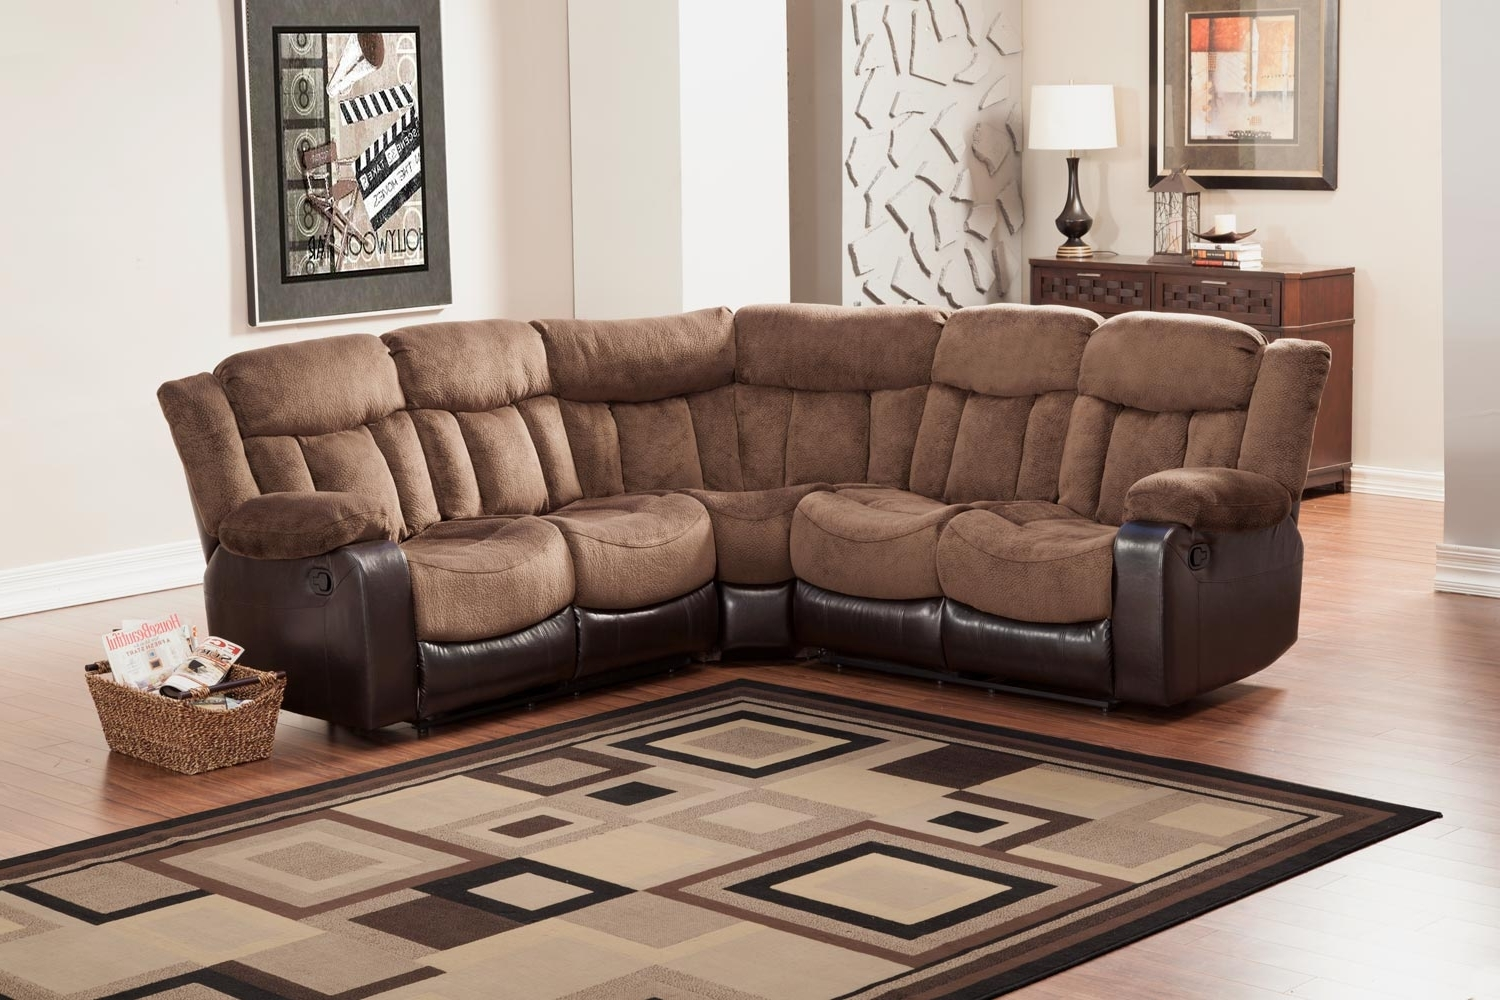 Homelegance Vera Reclining Sectional Sofa – Chocolate – Textured For Trendy Plush Sectional Sofas (View 11 of 15)